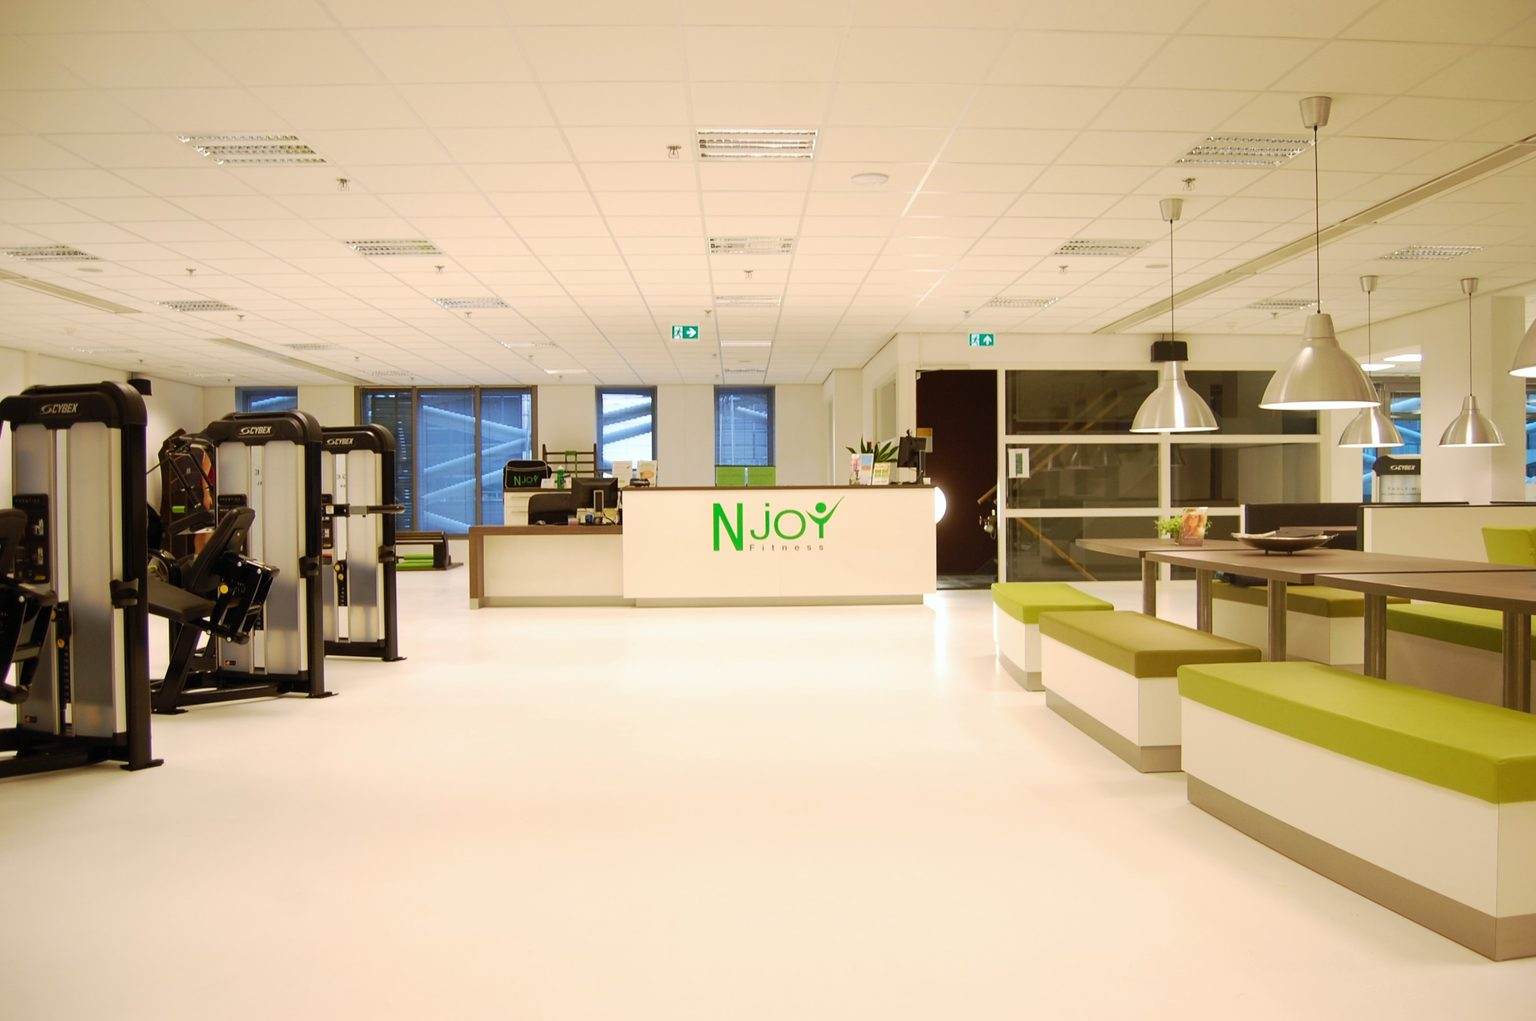 Photo from Njoy Fitness - Den Haag